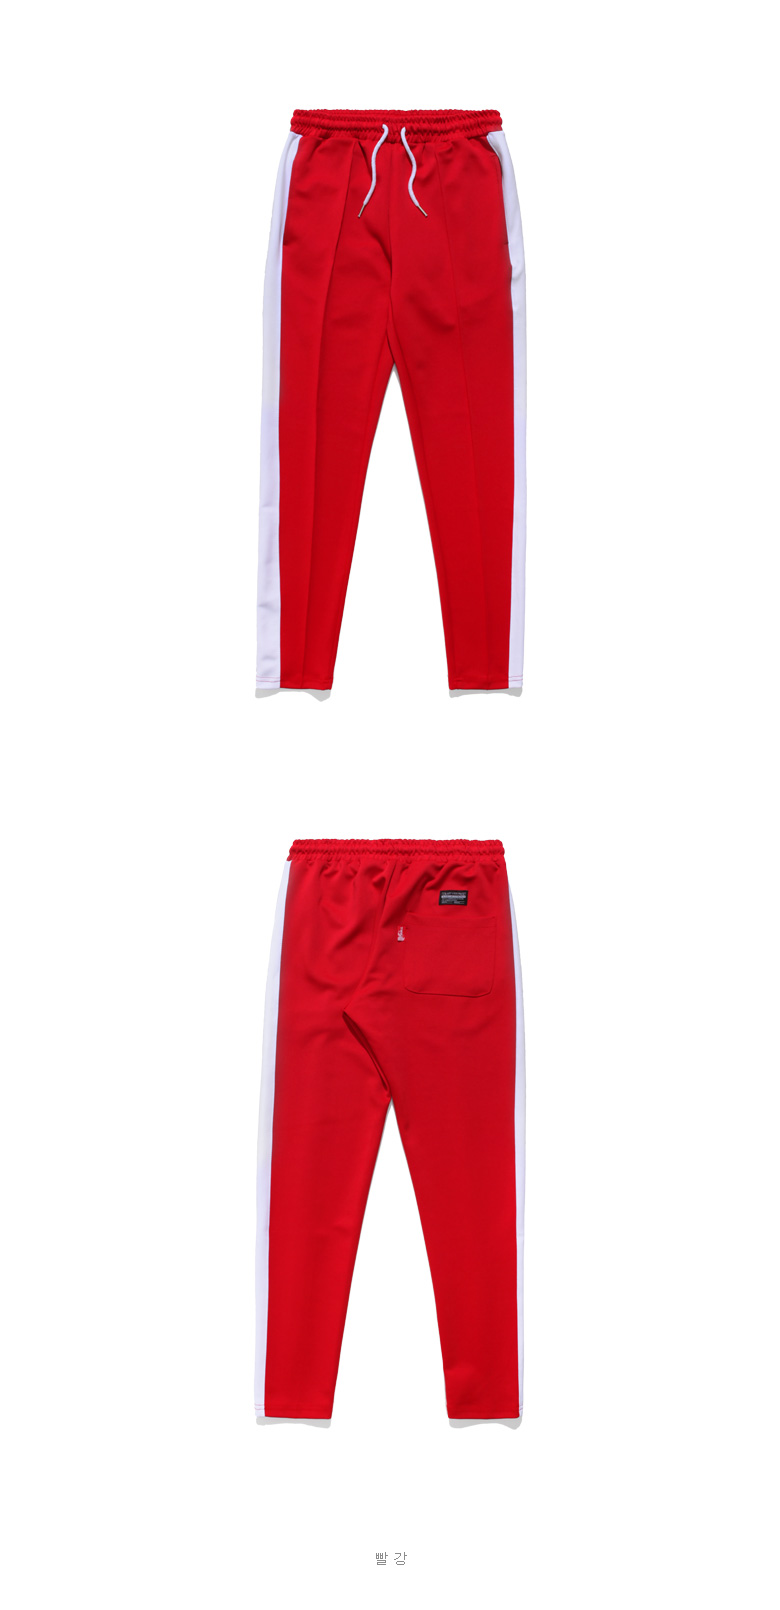 20170424_twn_slimline_pants_red_sy_01.jpg